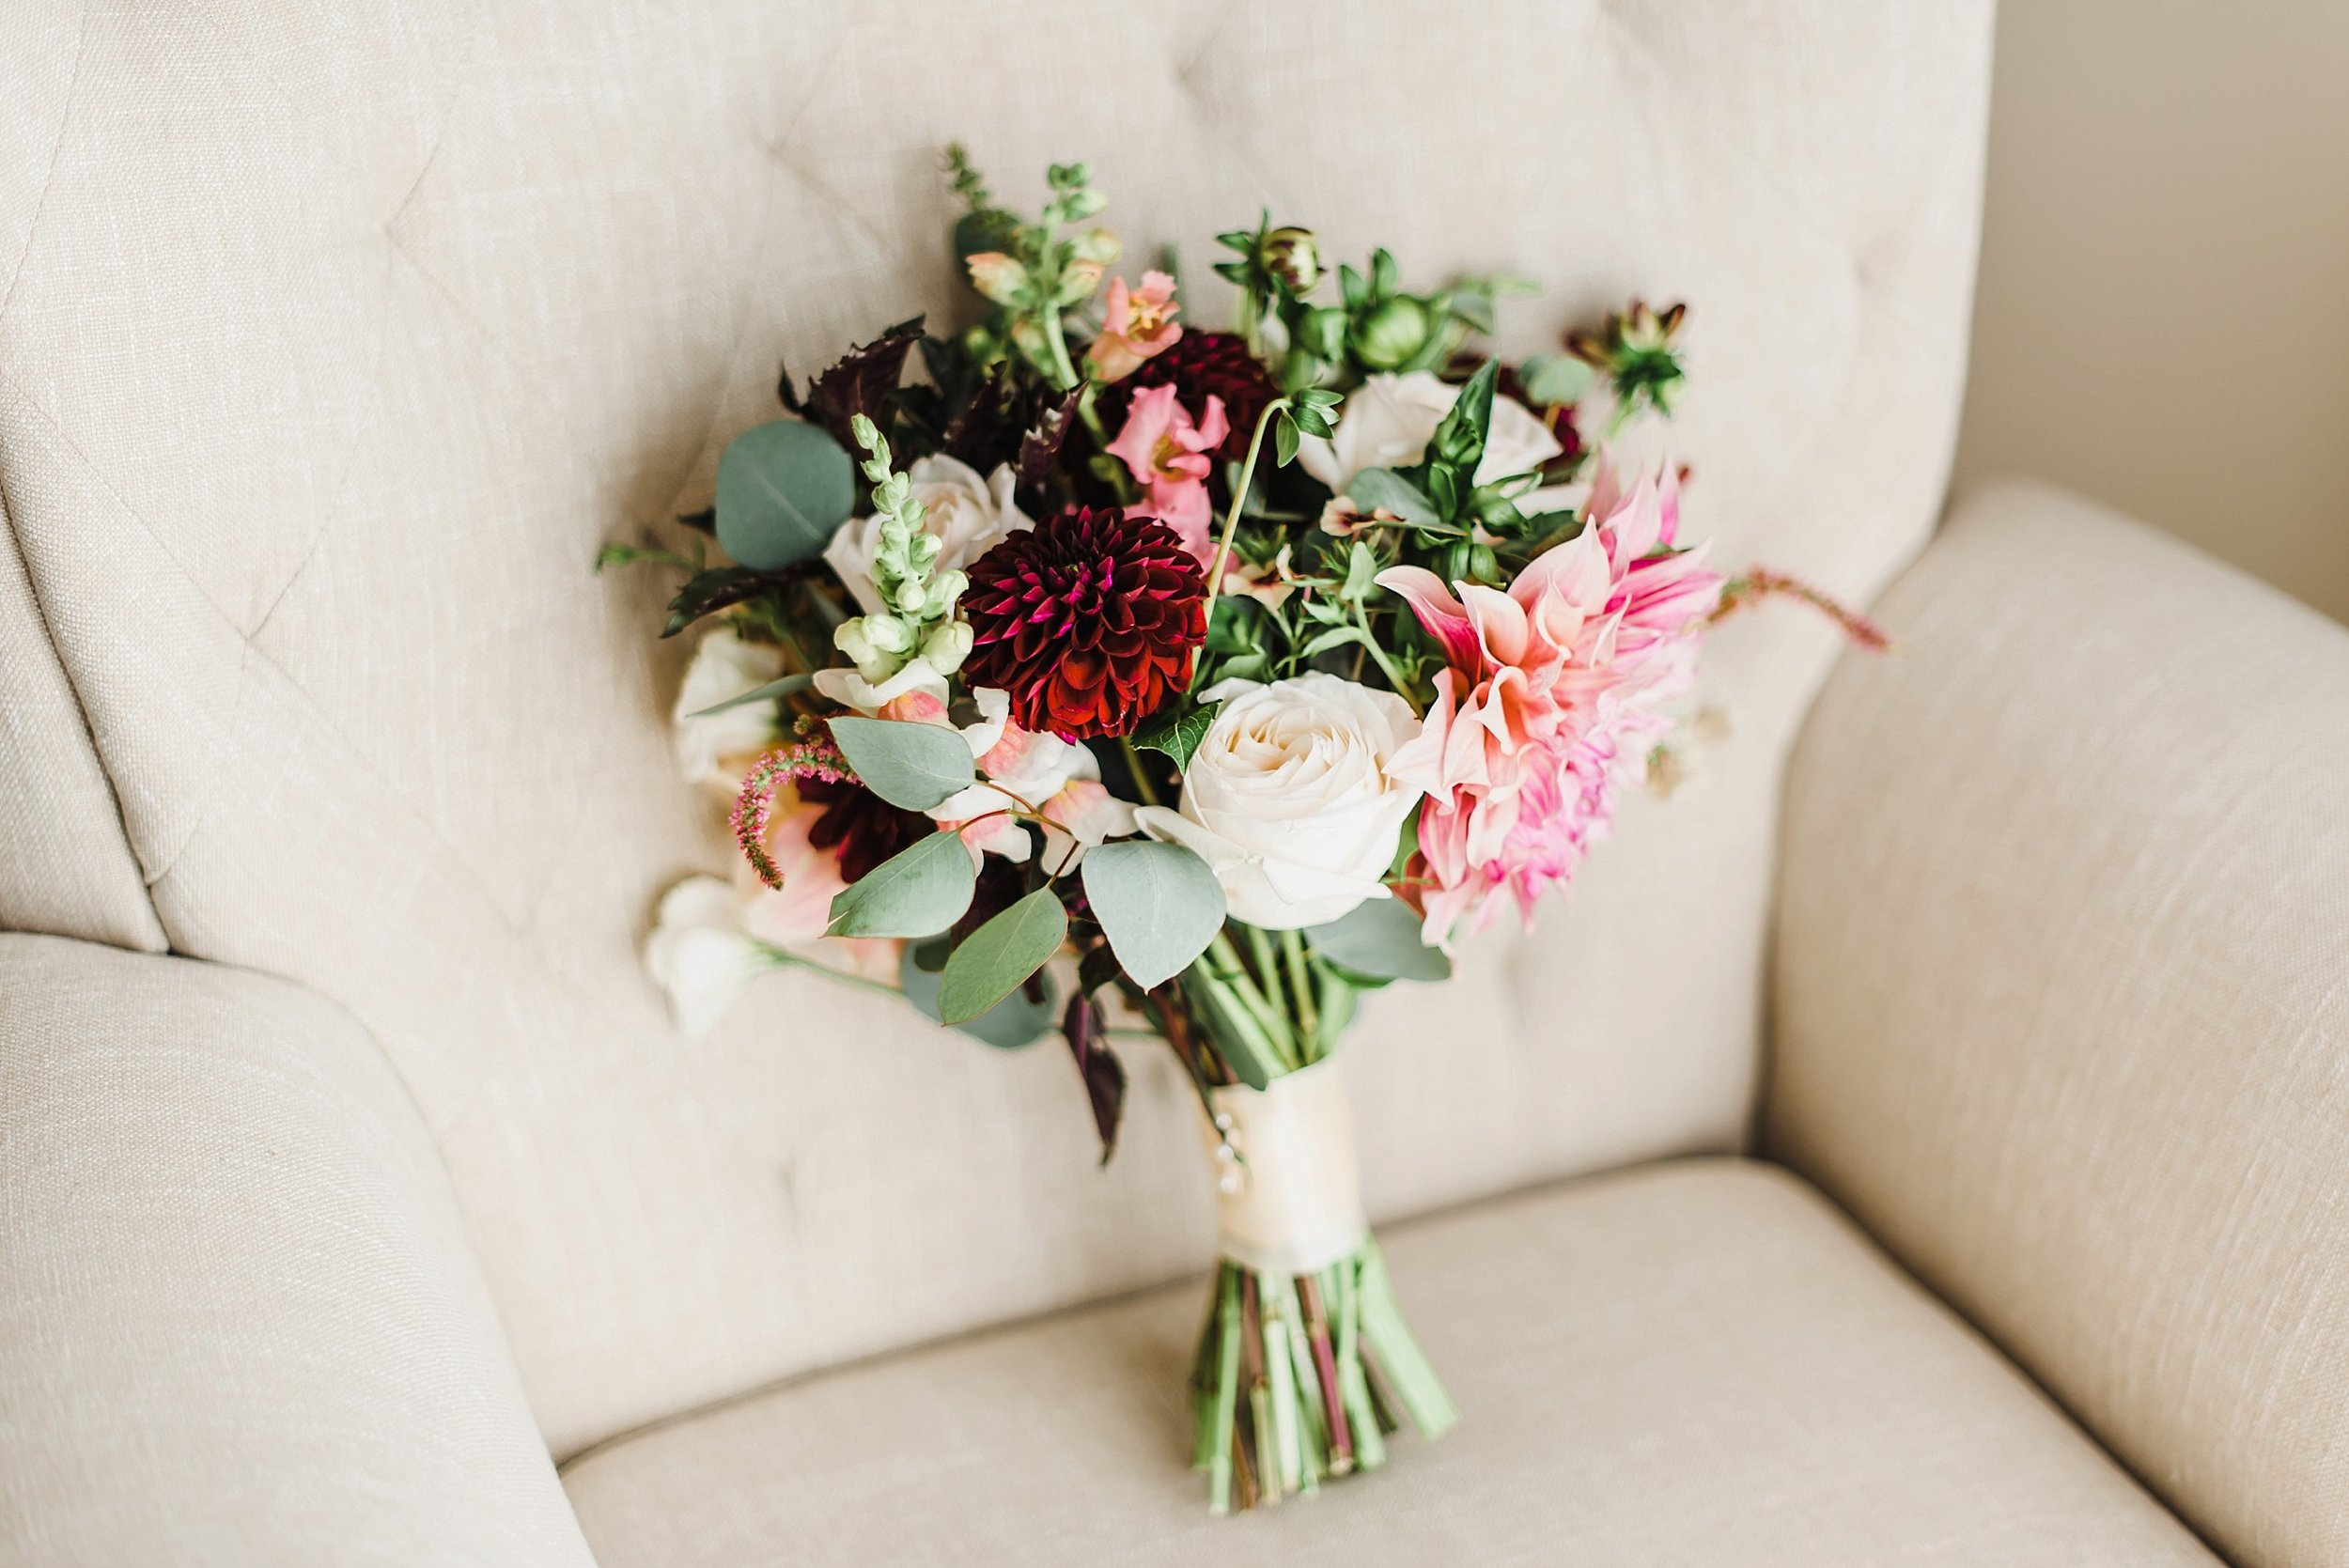 Audra's flowers perfectly created by Flowers Talk Tivoli in my favourite design style: natural, wild and free!